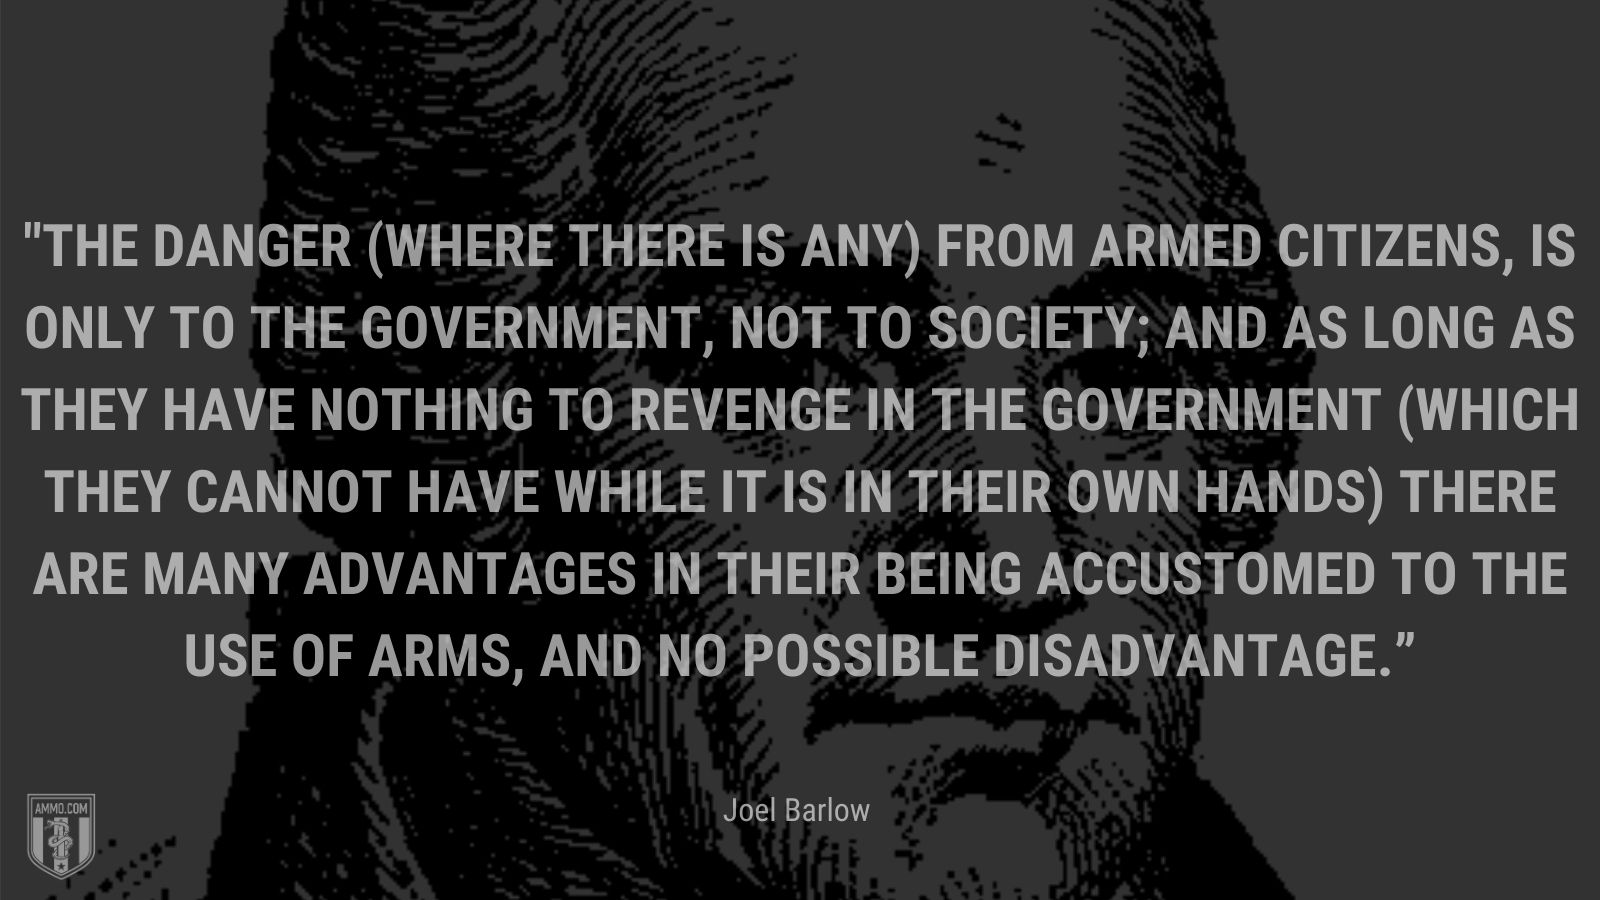 """""""The danger (where there is any) from armed citizens, is only to the government, not to society; and as long as they have nothing to revenge in the government (which they cannot have while it is in their own hands) there are many advantages in their being accustomed to the use of arms, and no possible disadvantage"""" - Joel Barlow"""